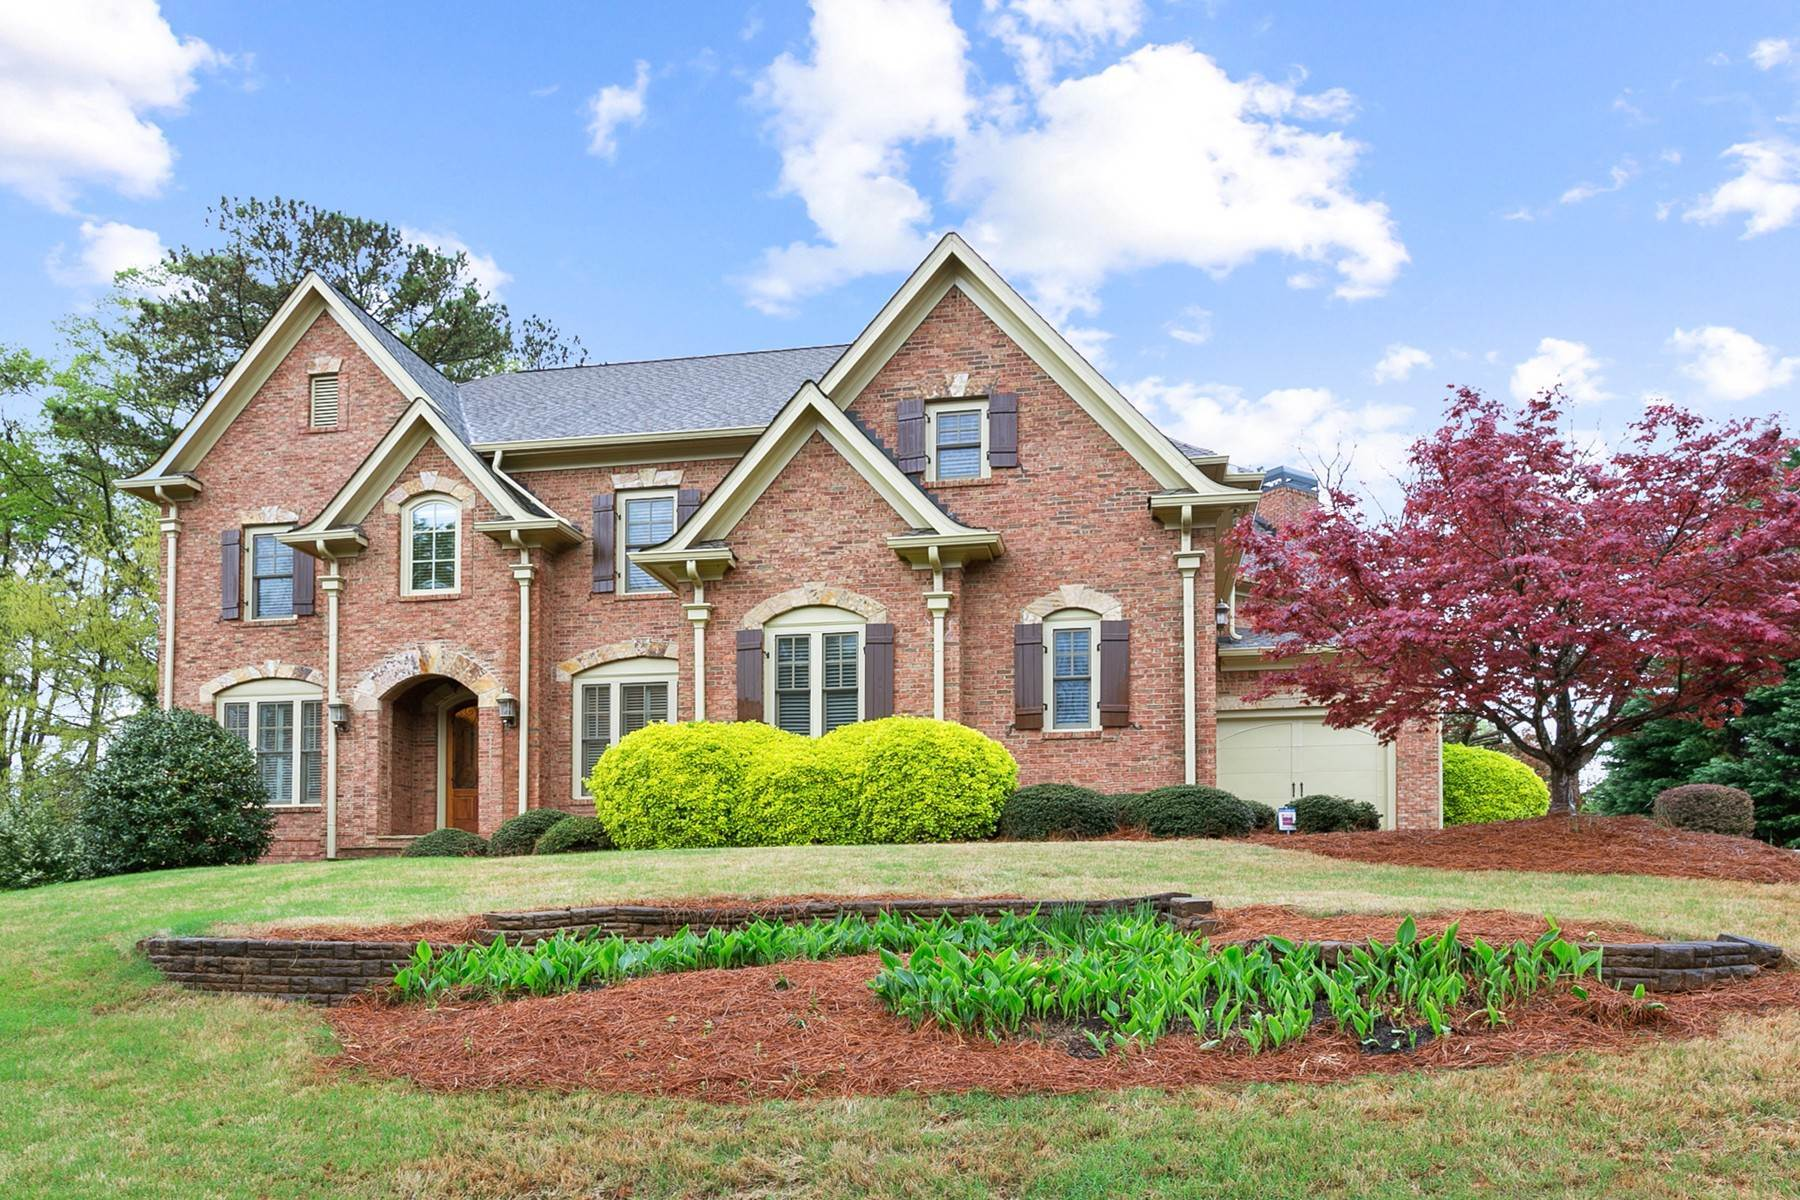 Single Family Homes for Active at Incredible Value in Hammond Hills 5850 Garber Drive Sandy Springs, Georgia 30328 United States